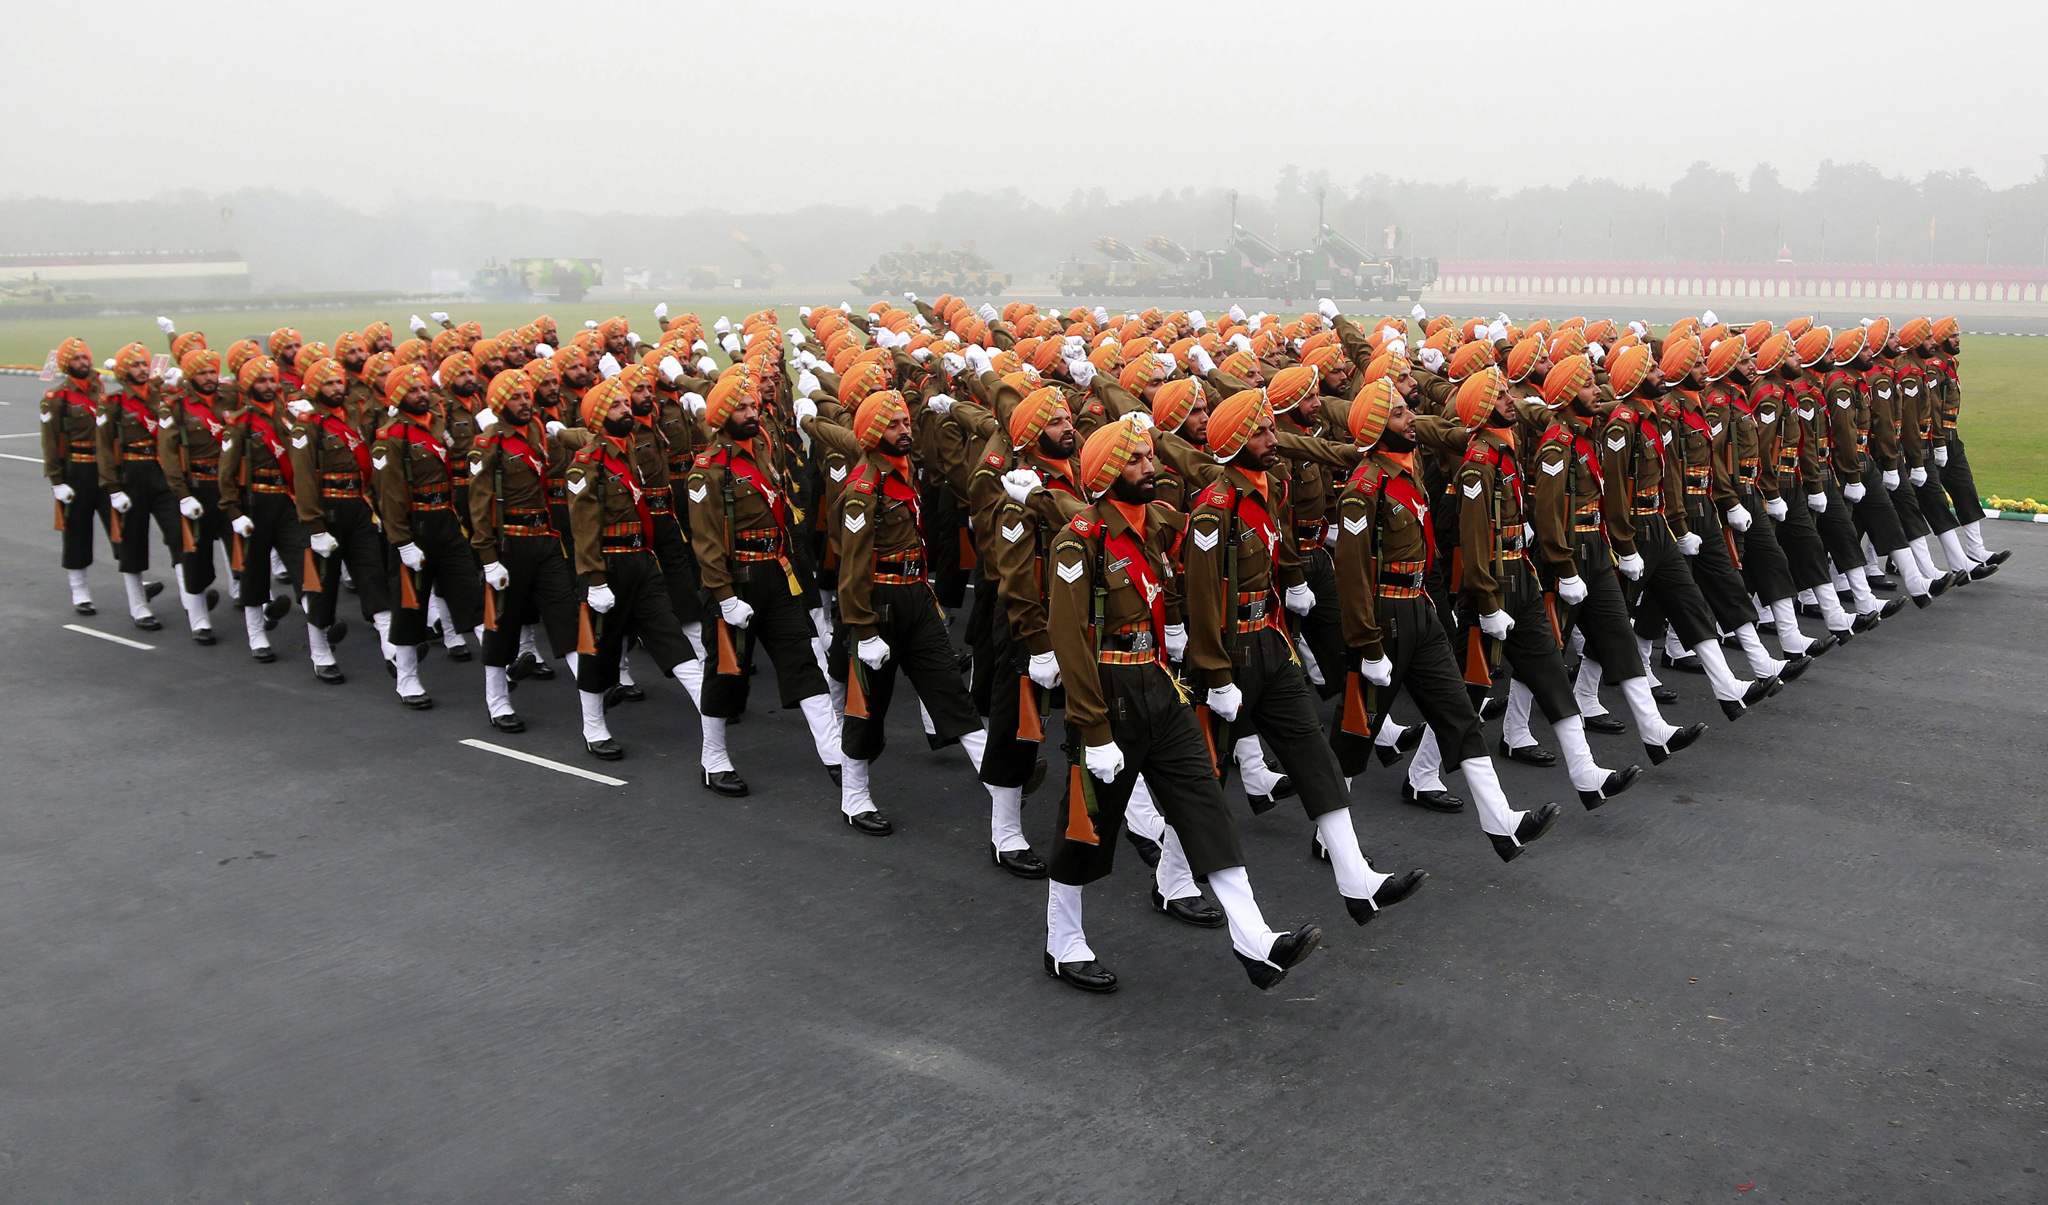 Indian Army Day in New Delhi...epa04022054 Indian army personnel march during a function celebrating the Indian Army Day in New Delhi, India, 15 January 2014. The Indian Army commemorated its foundation day by paying homage to martyred soldiers. The army chief took the salute at a parade and also presented Medals for gallantry and unit citations.